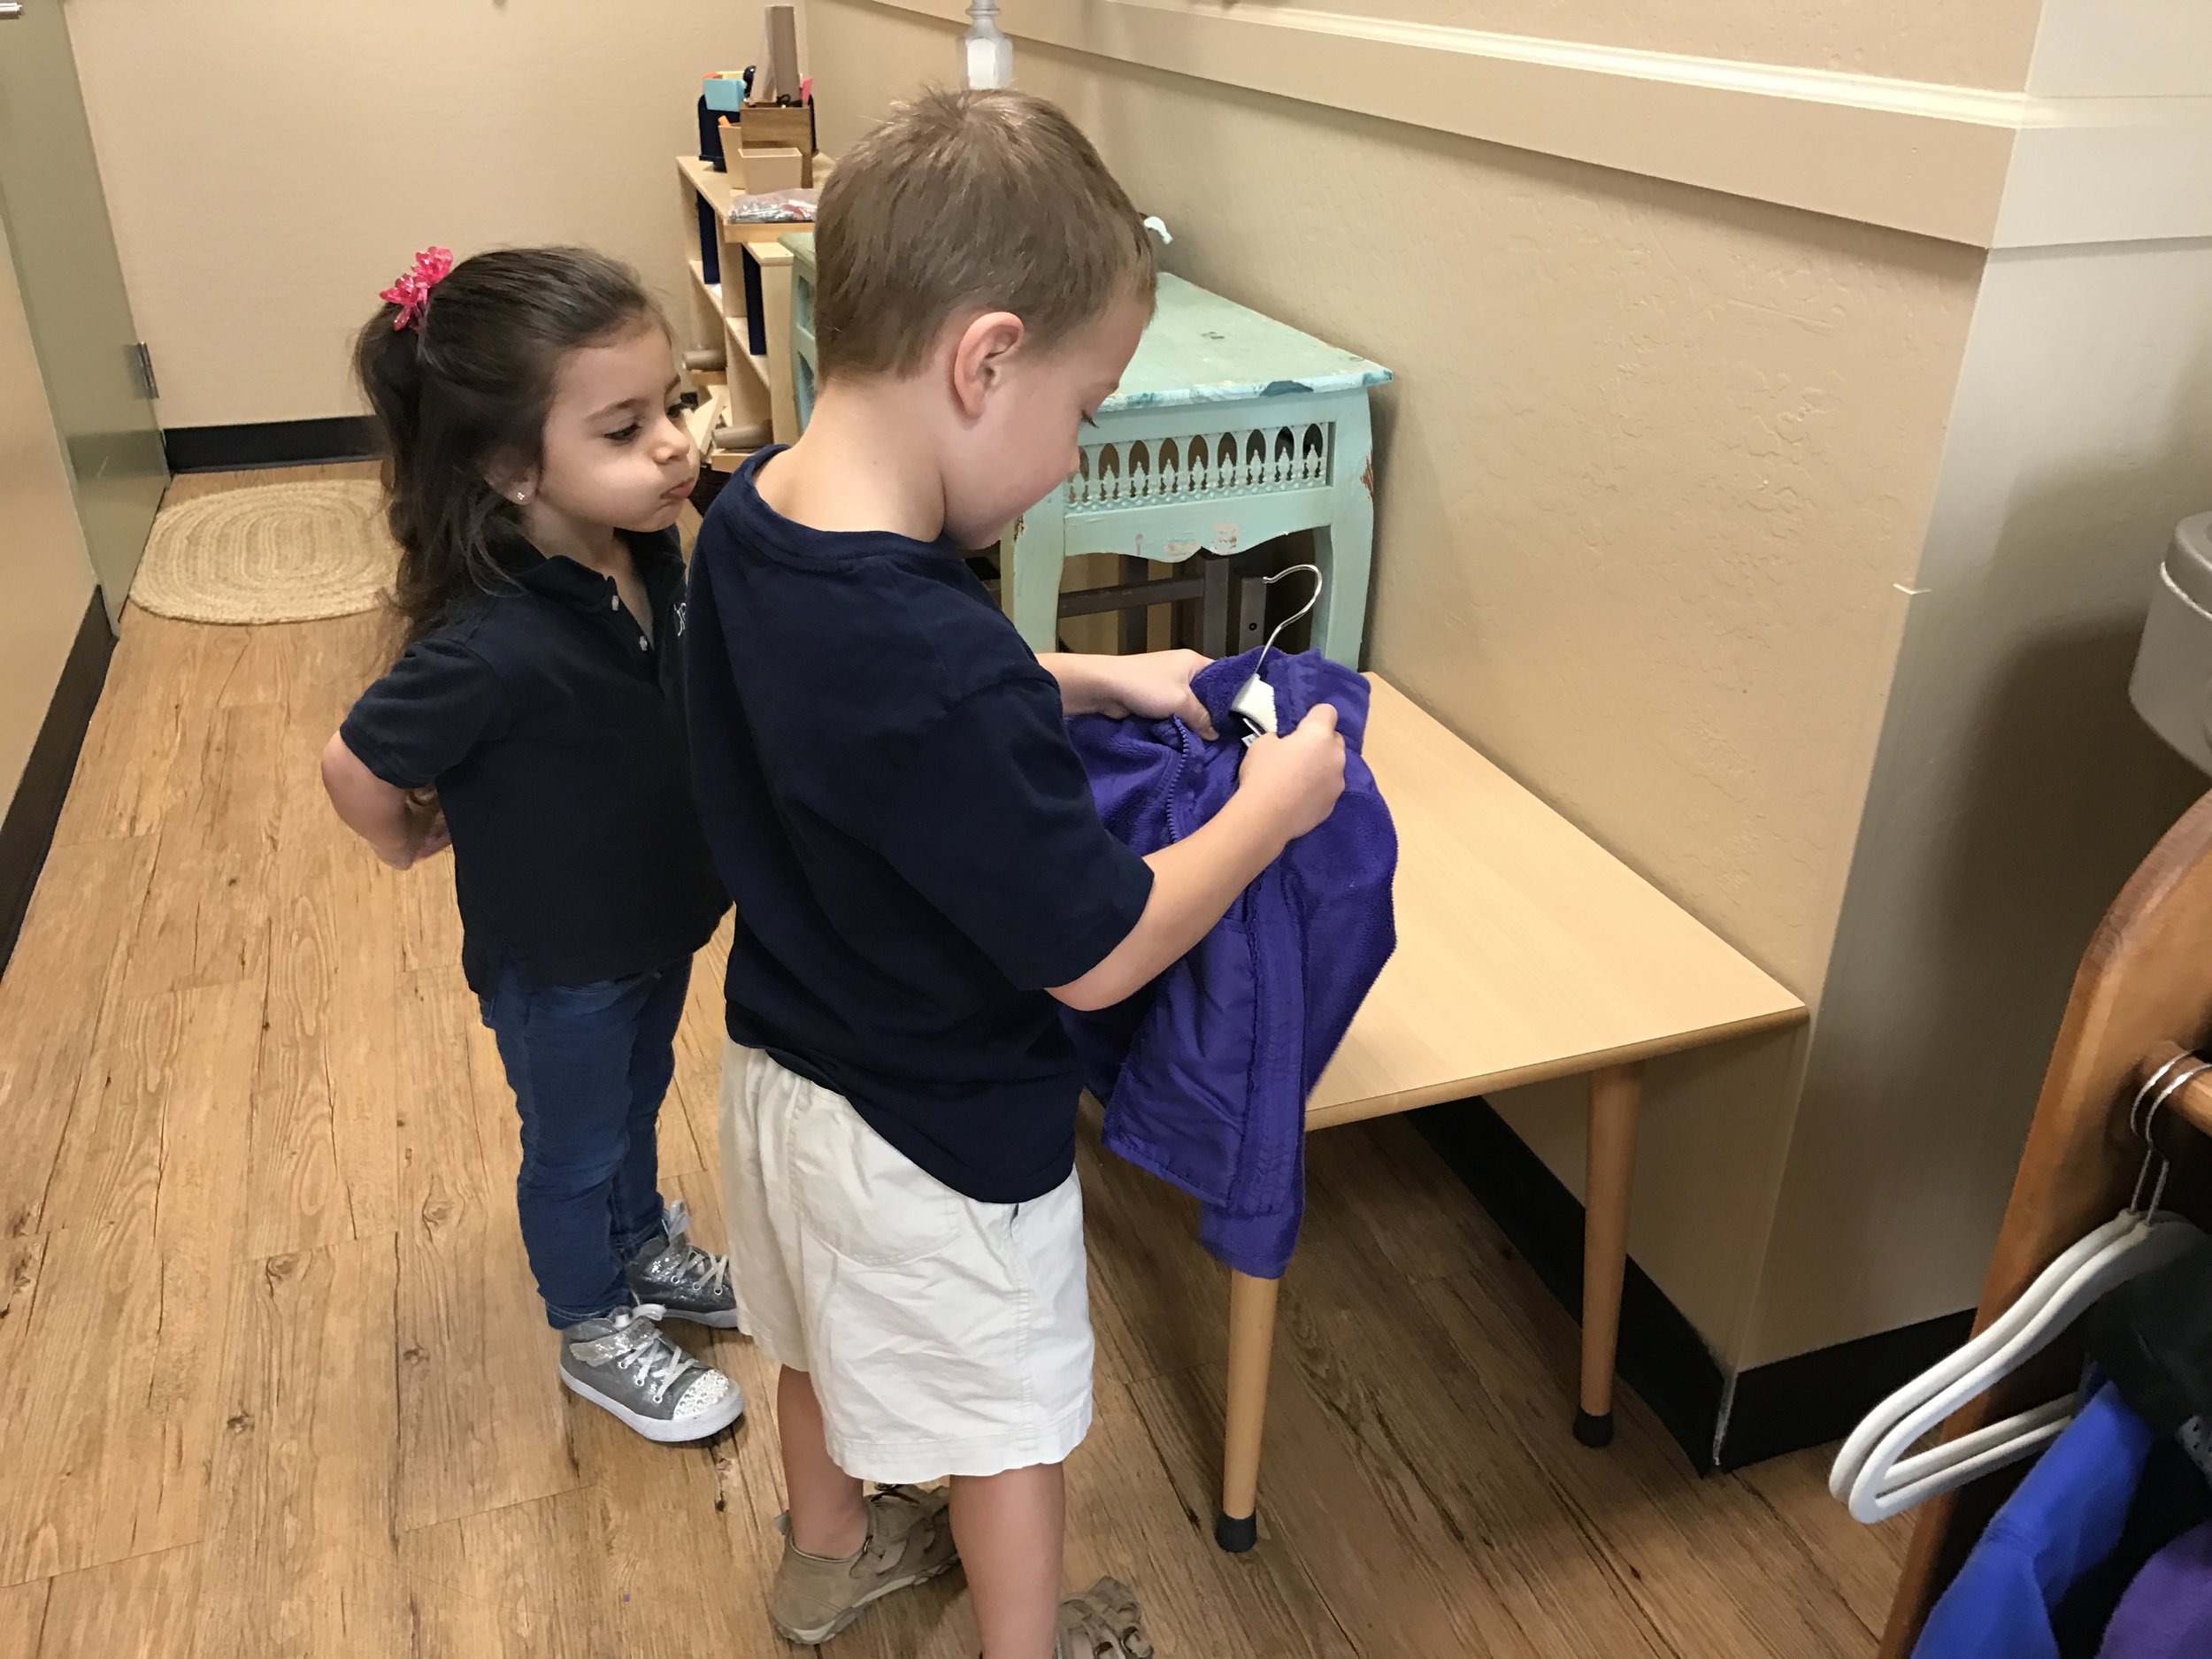 An older child helping his younger friend to hang her coat.